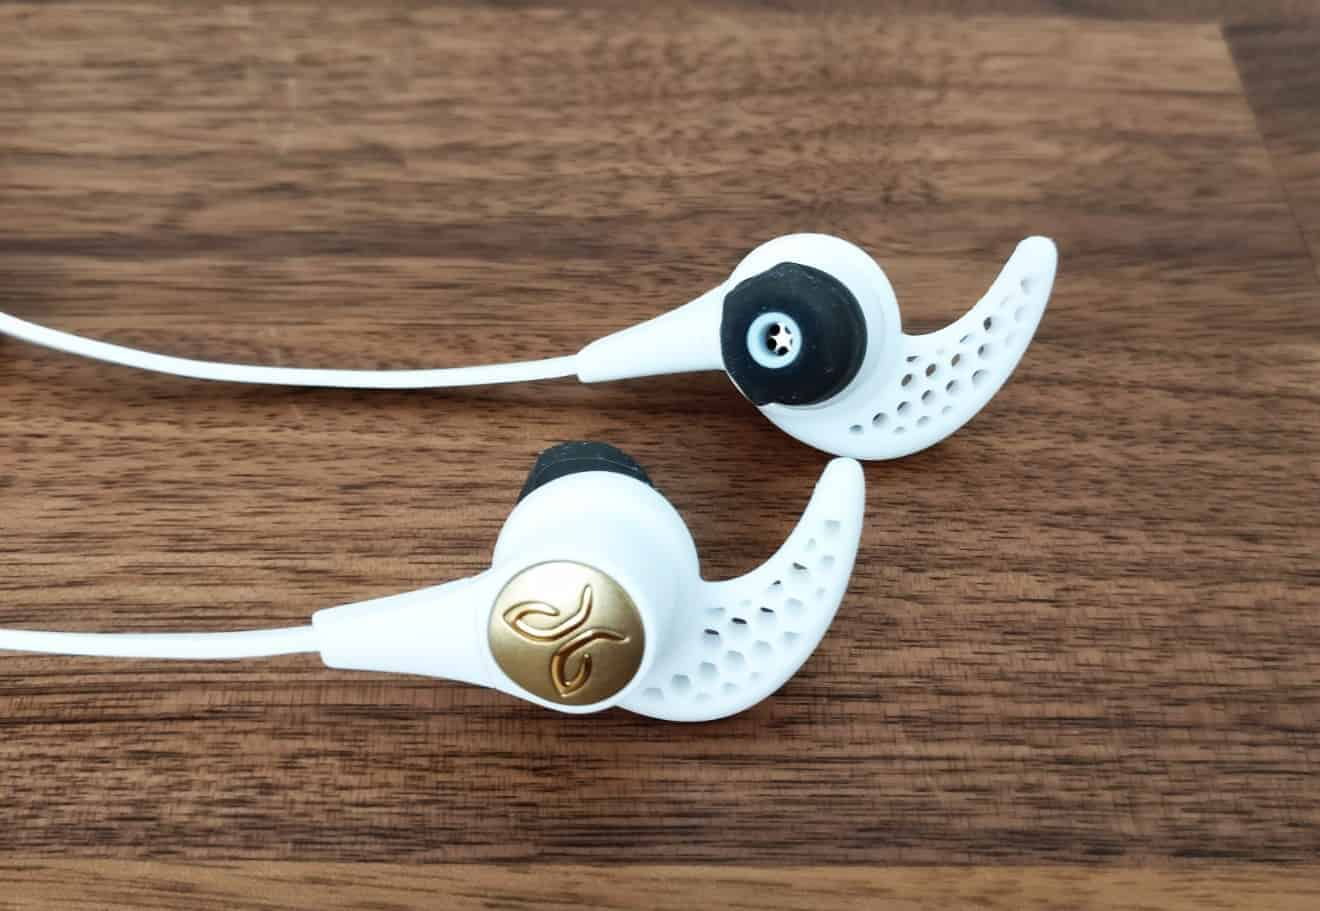 jaybird-x3-white-photos10 Jaybird X3 Bluetooth Headphones Review